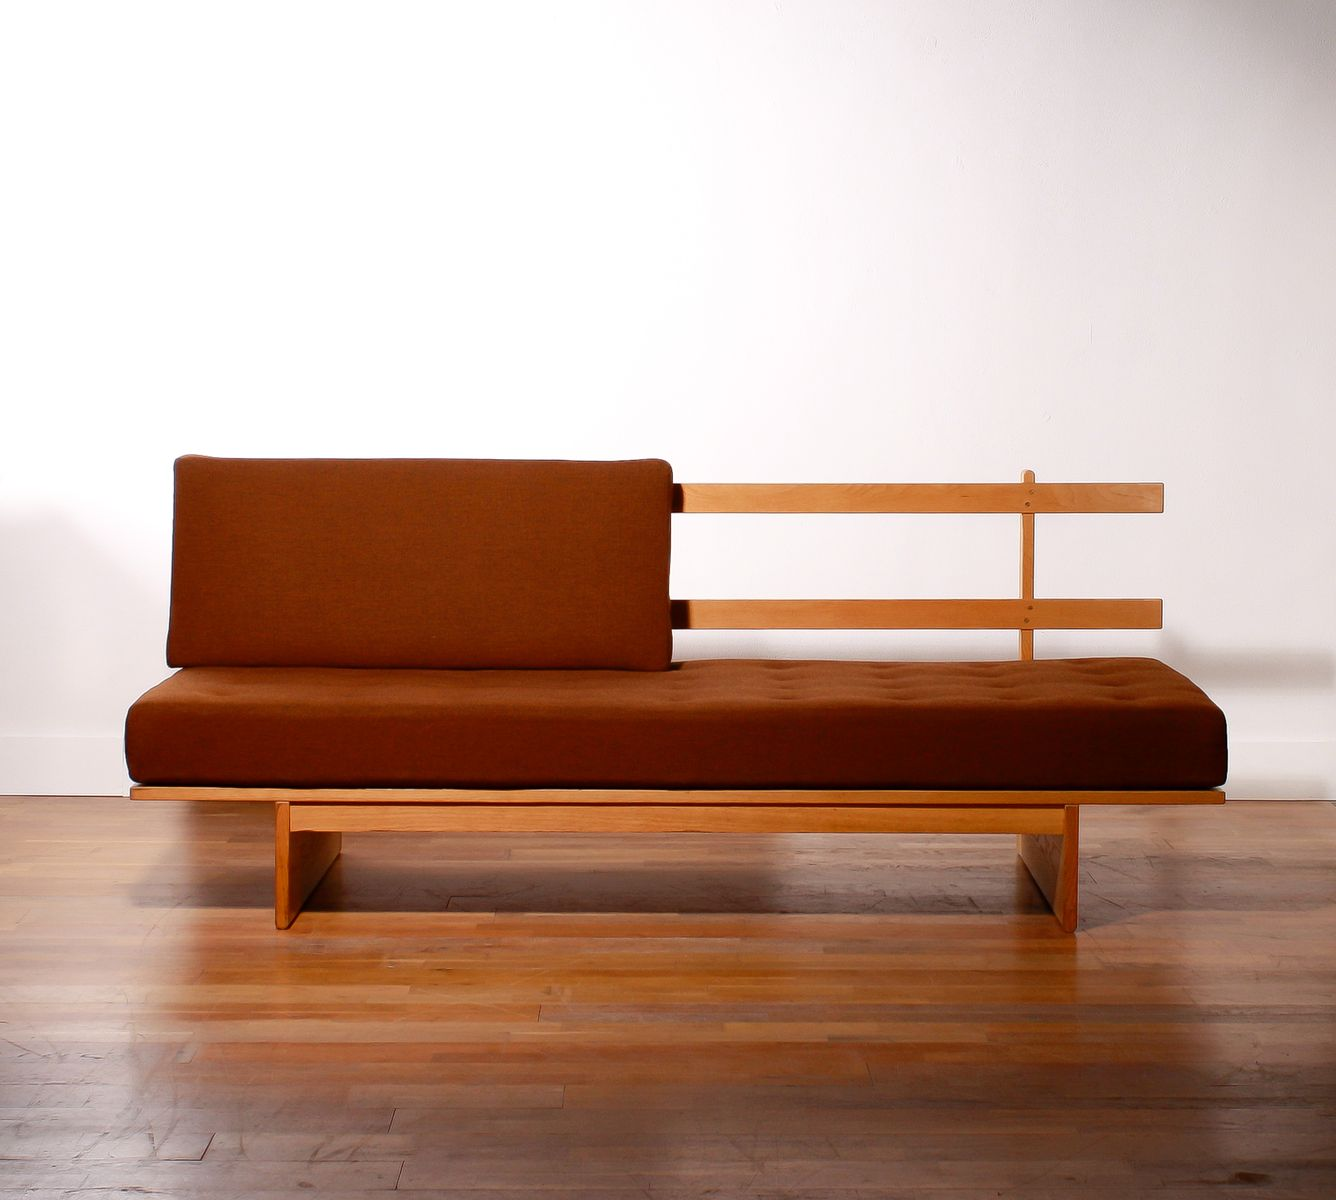 Mid-Century Wool & Oak Daybed by Bra Bohag for Dux - Mid-Century Wool & Oak Daybed By Bra Bohag For Dux For Sale At Pamono